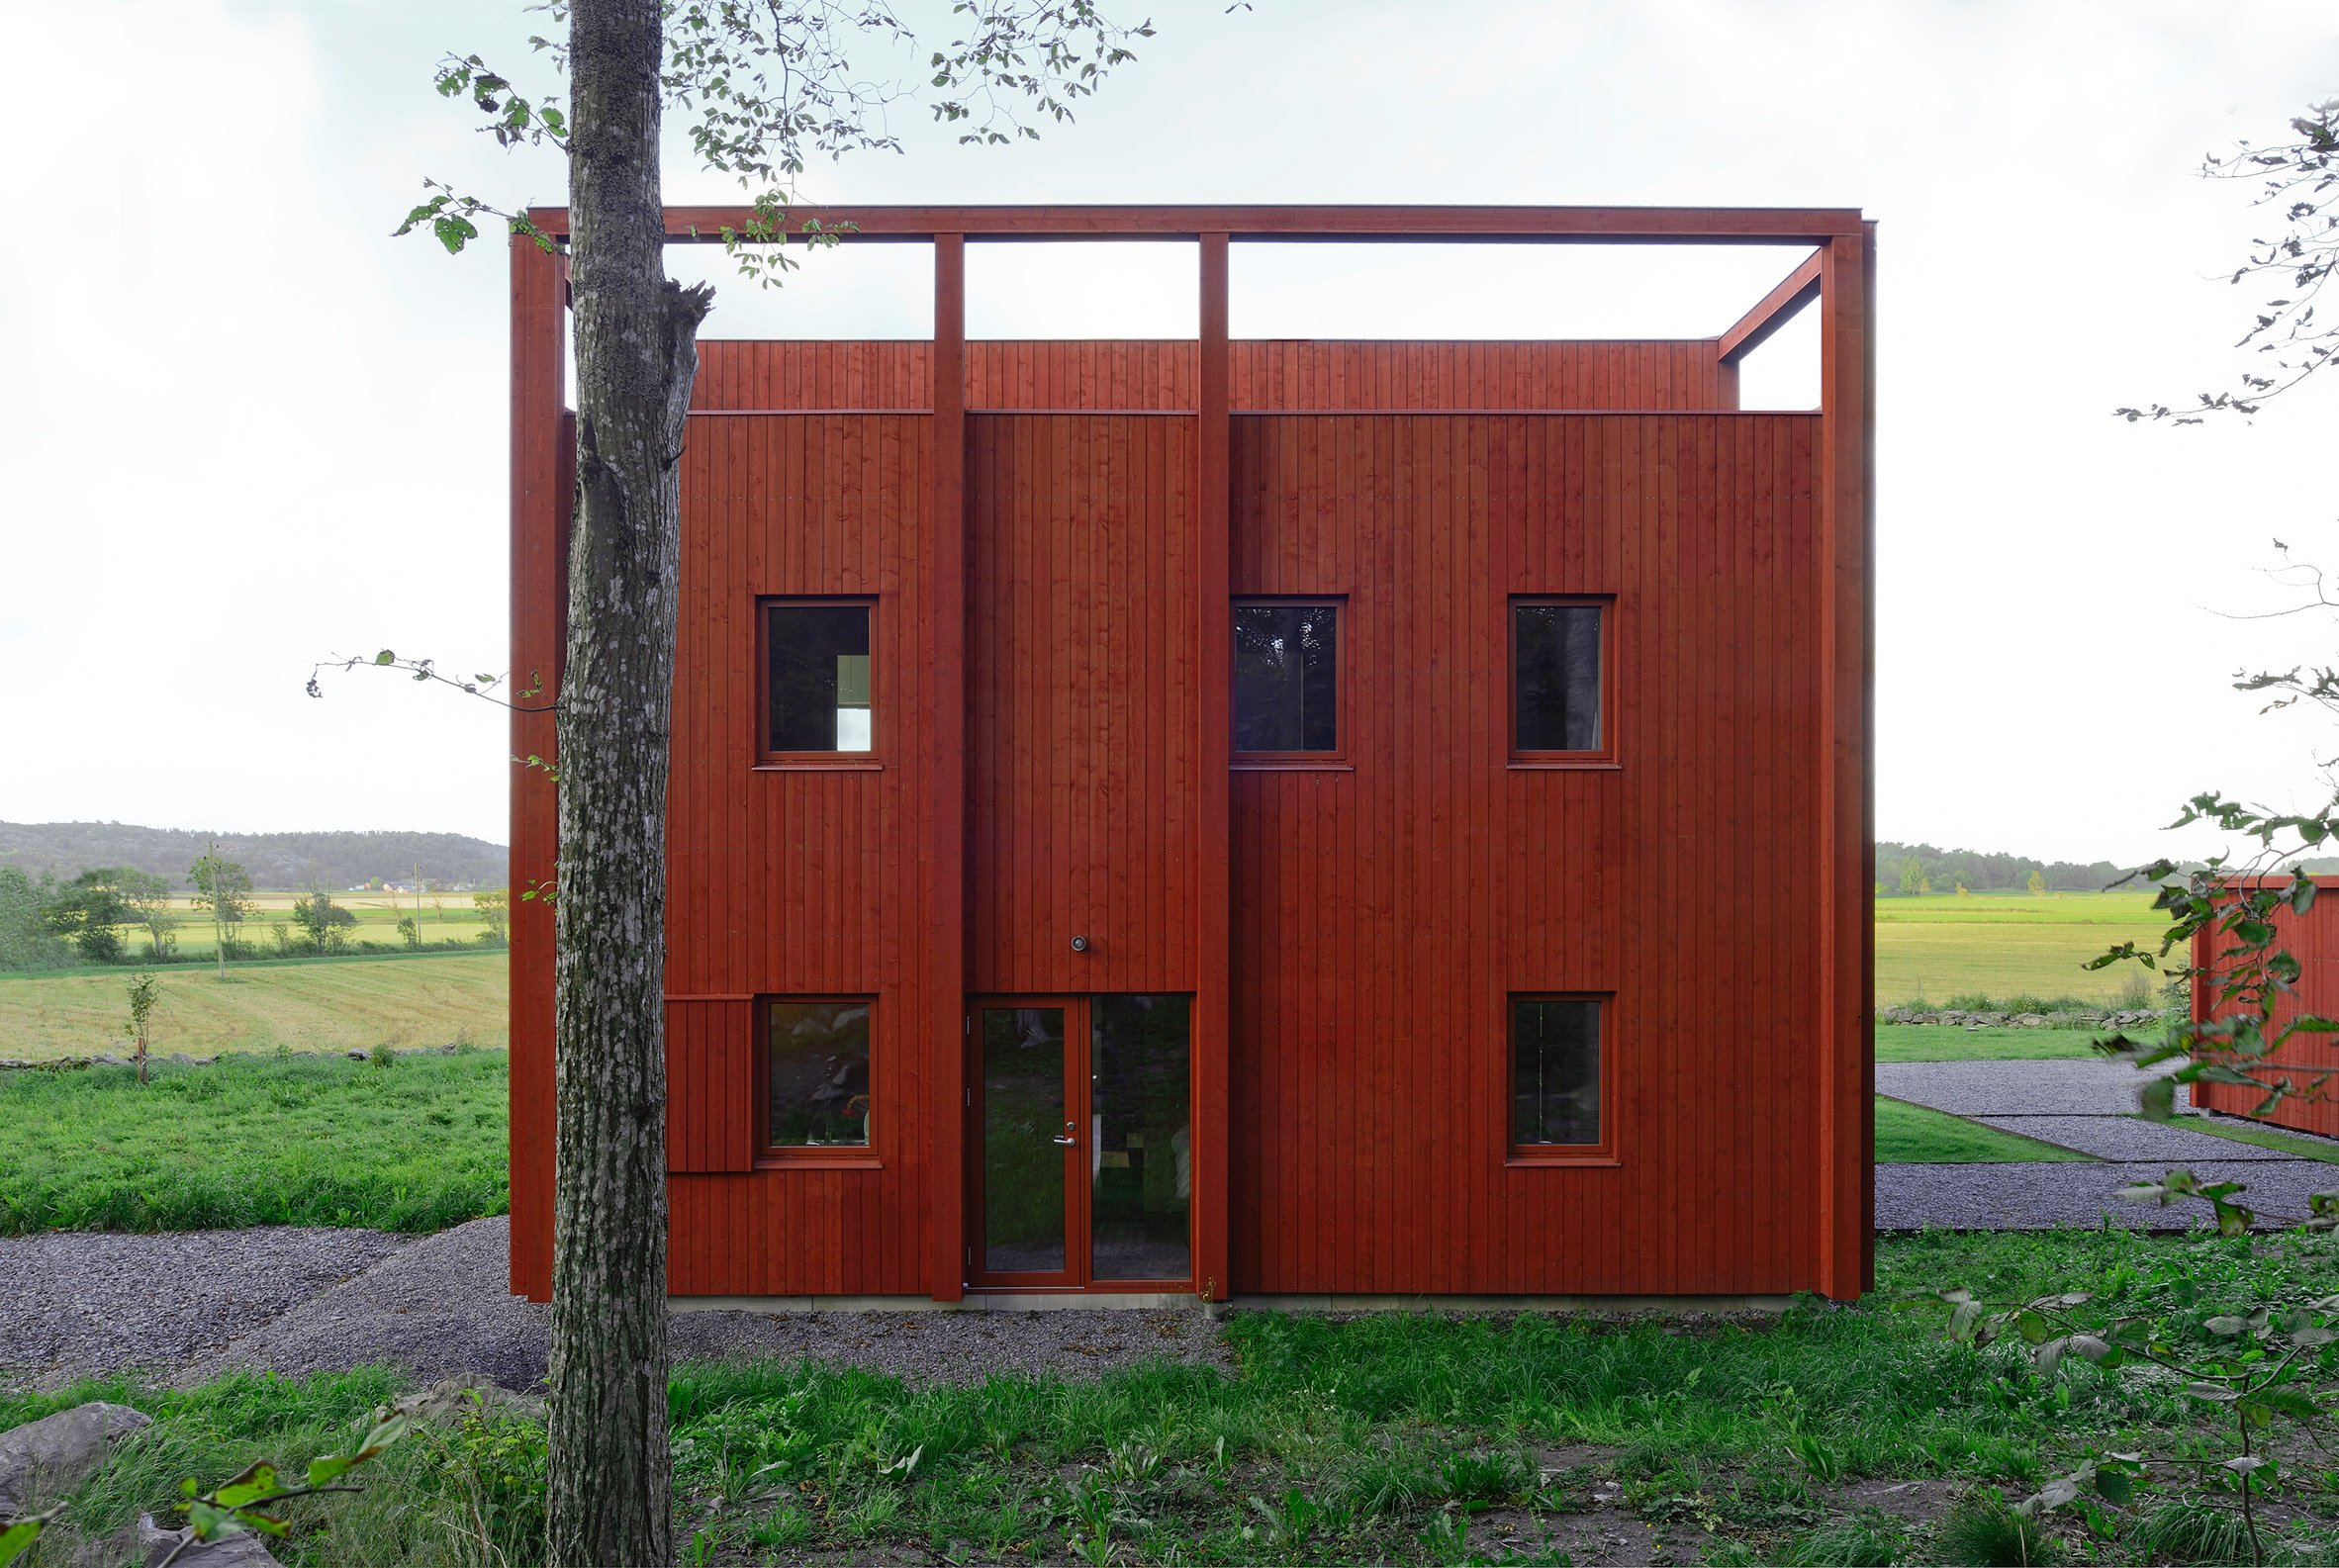 Bornstein Lyckefors Architects builds vibrant red cabin as a retreat for a Swedish family